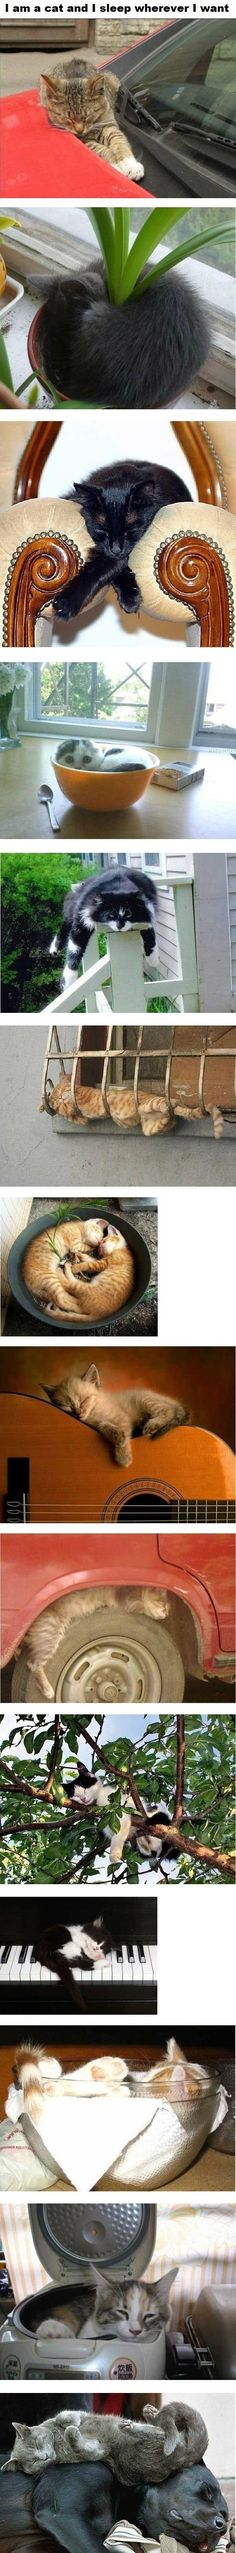 Im a cat and I sleep wherever I want....this is for you sam...my fav is the one in the cereal bowl!